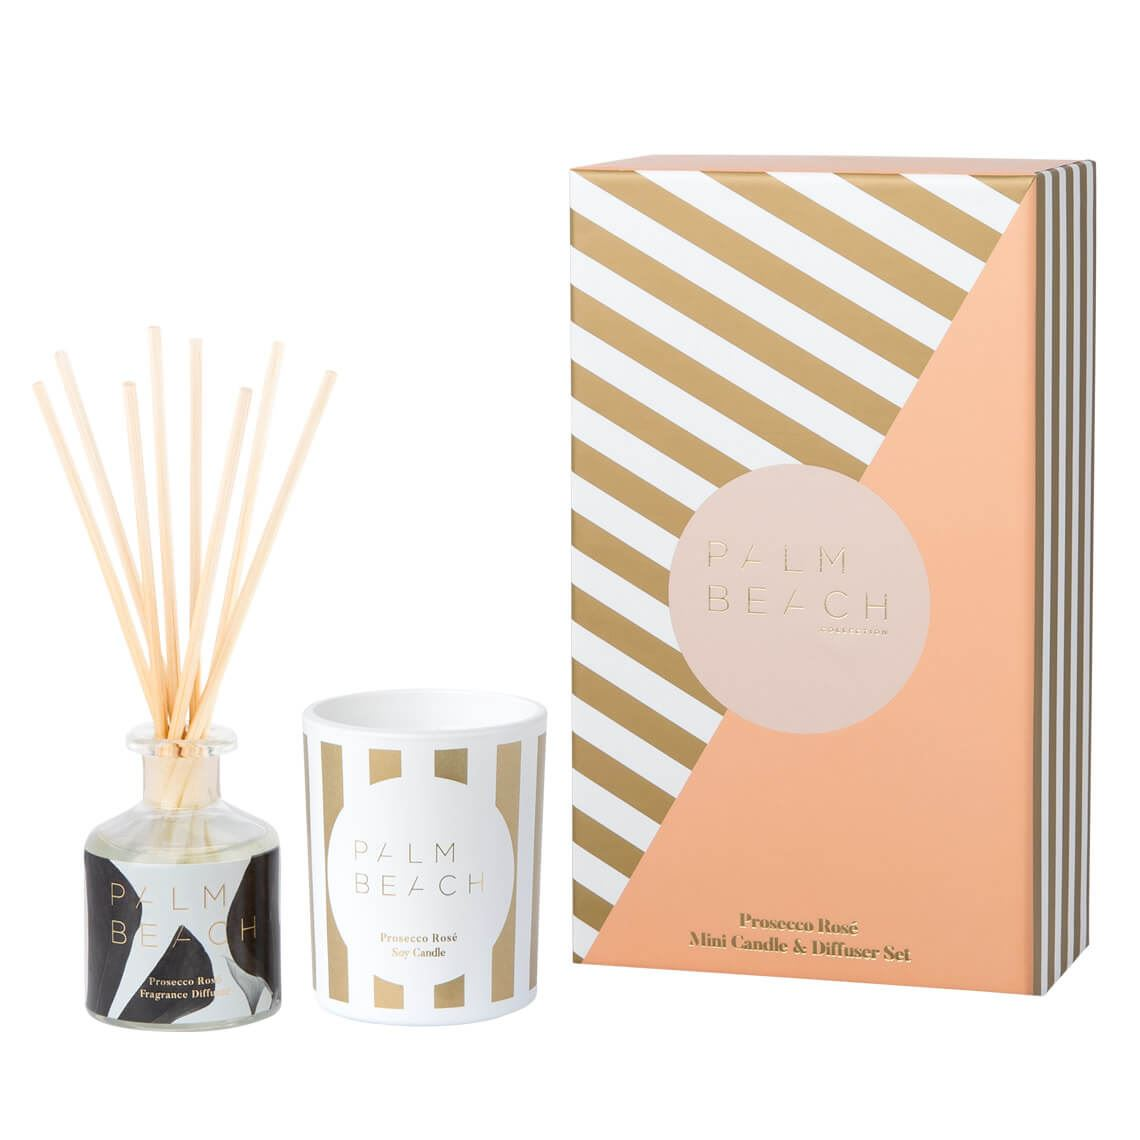 Palm Beachcollection Mini Candle & Diffuser Gift Pack Xmas Linen Size W 12cm x D 7cm x H 20cm in Prosecco Rose Freedom